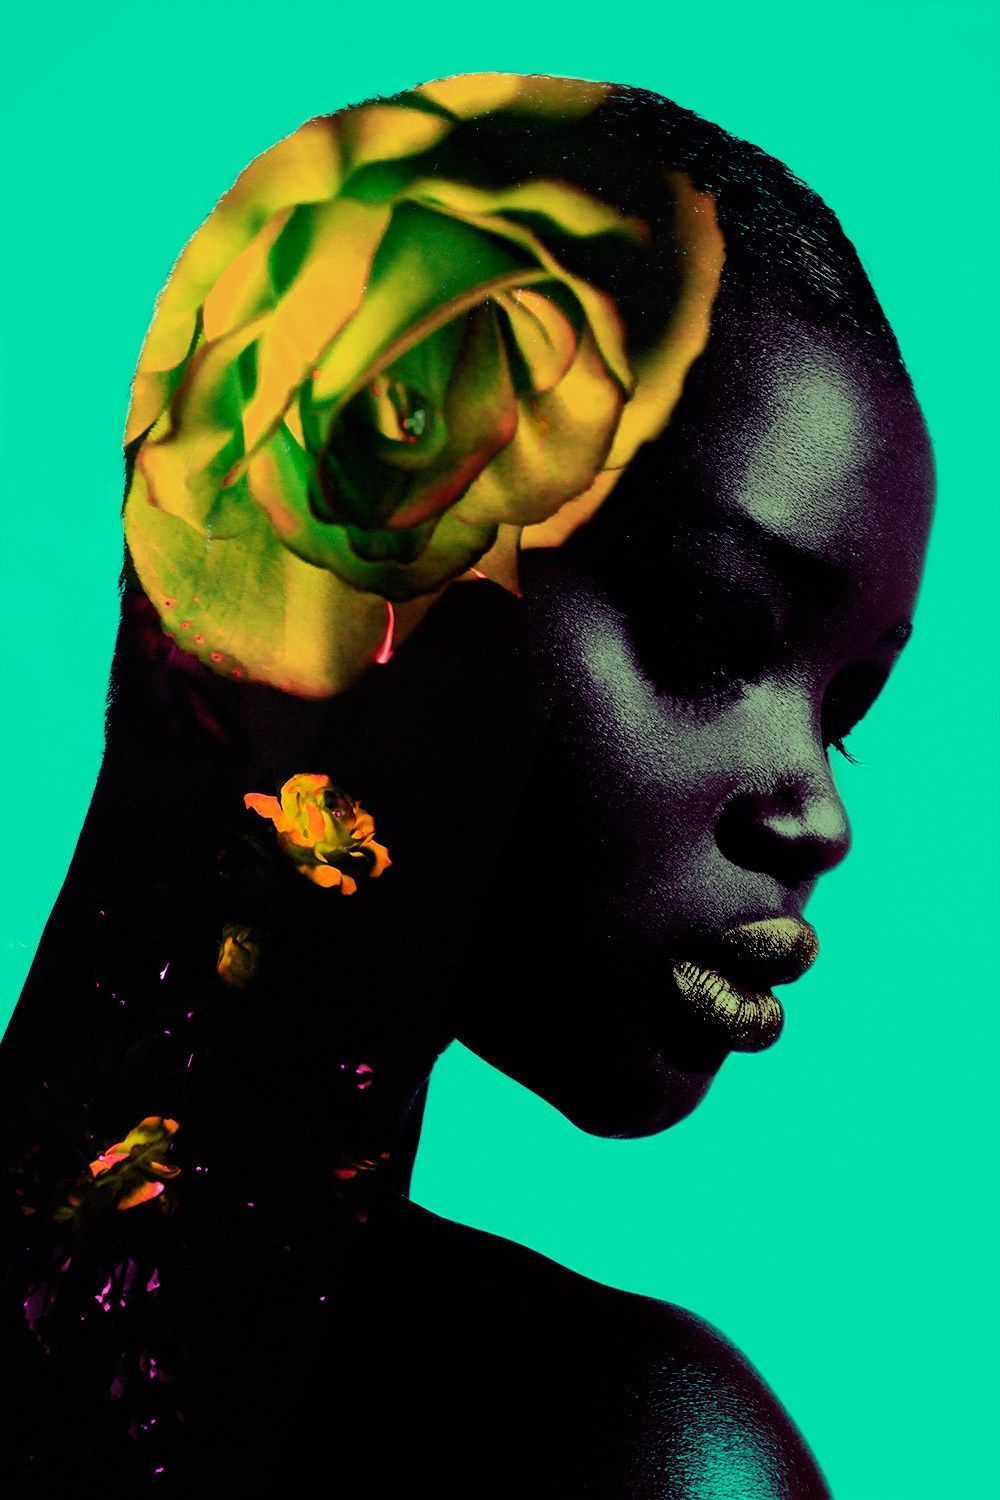 Madame Germany with model Ataui Deng Colored Rose Beauty Editorial | NEW YORK FASHION BEAUTY PHOTOGRAPHER- EDITORIAL COMMERCIAL ADVERTISING PHOTOGRAPHY